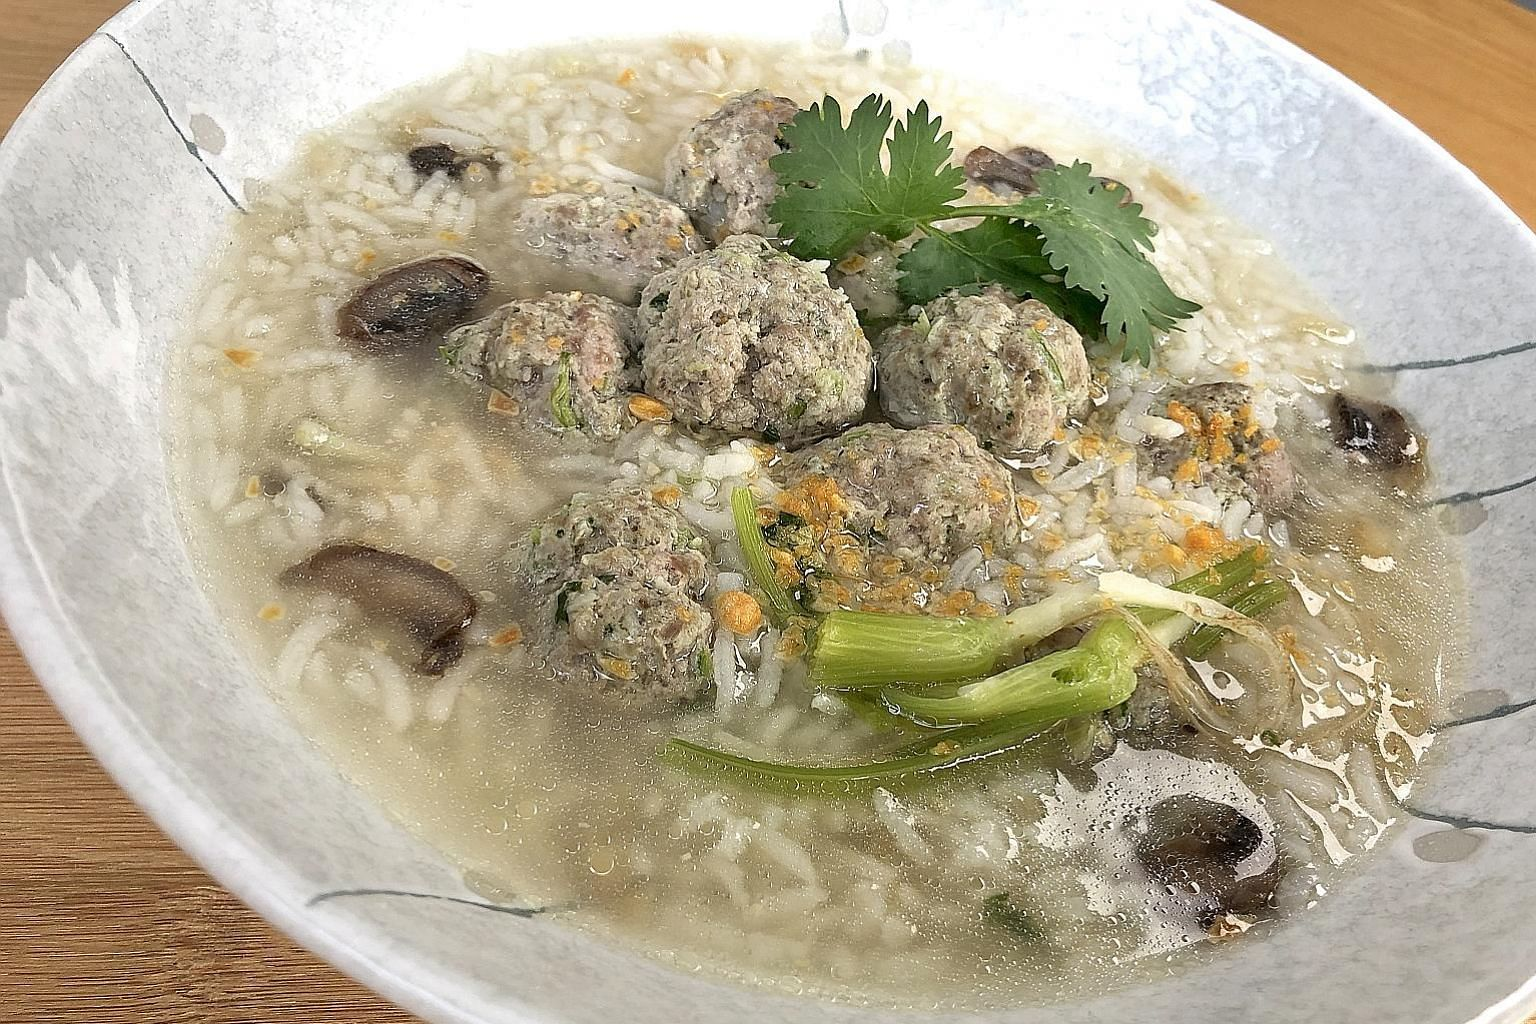 Thai rice porridge made with leftover rice and stock prepared using scraps such as coriander roots and garlic skins.